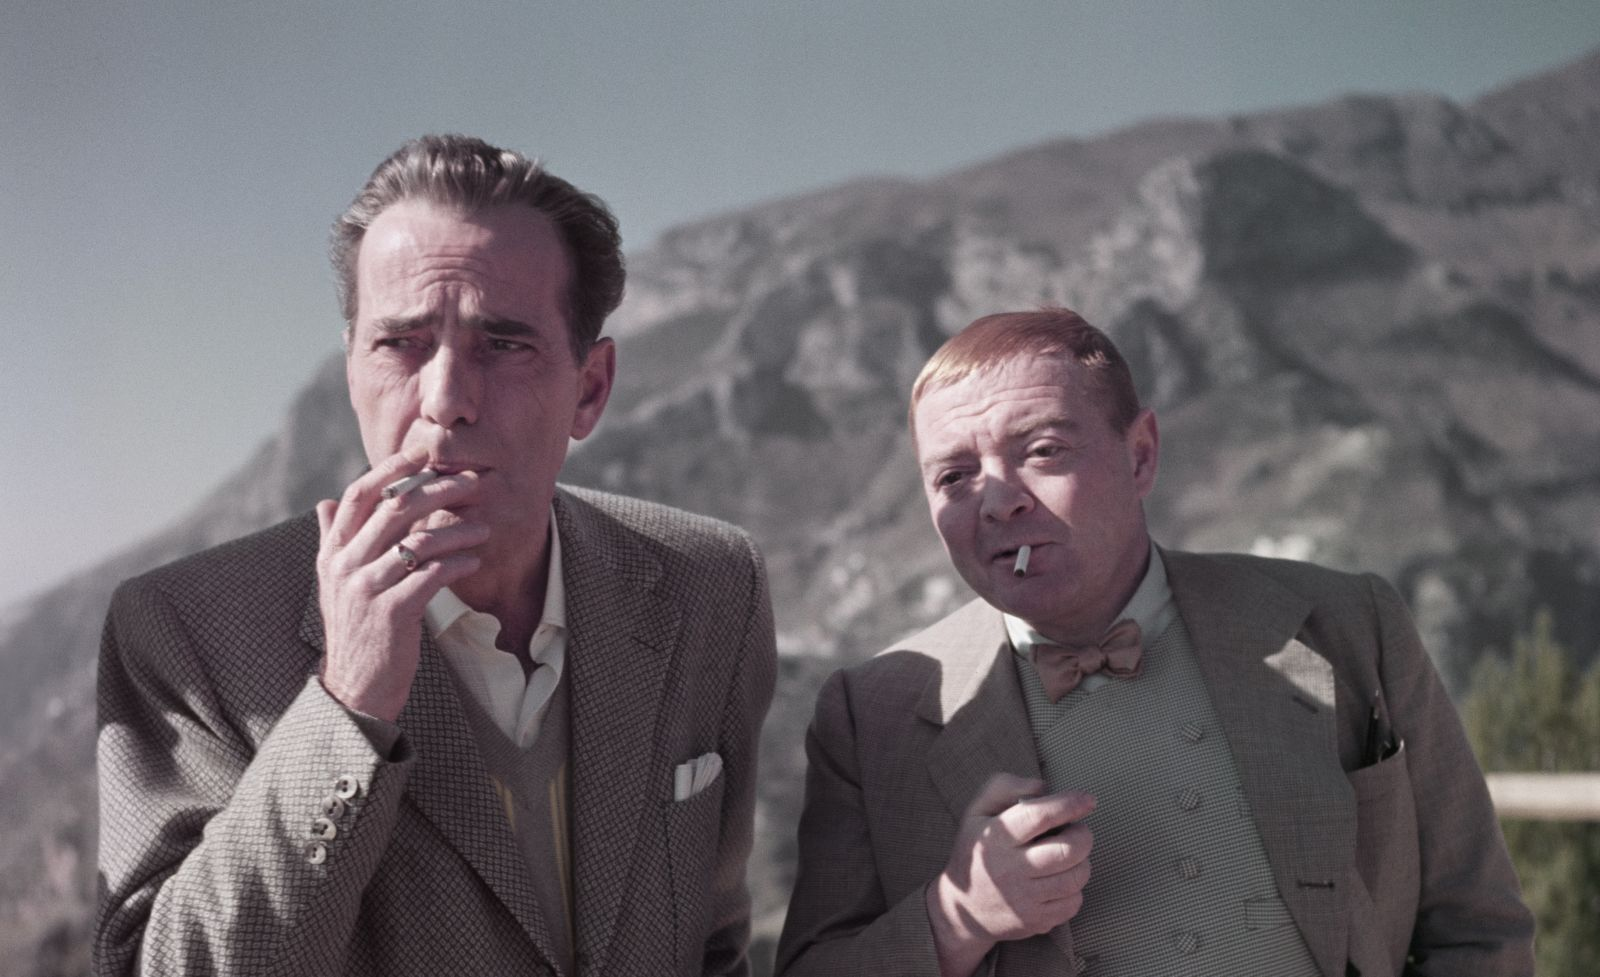 Humphrey Bogart e Peter Lorre sul set di Il Tesoro dell_Africa_Aprile 1953_Credits Robert Capa International Center of Photography Magnum Photos